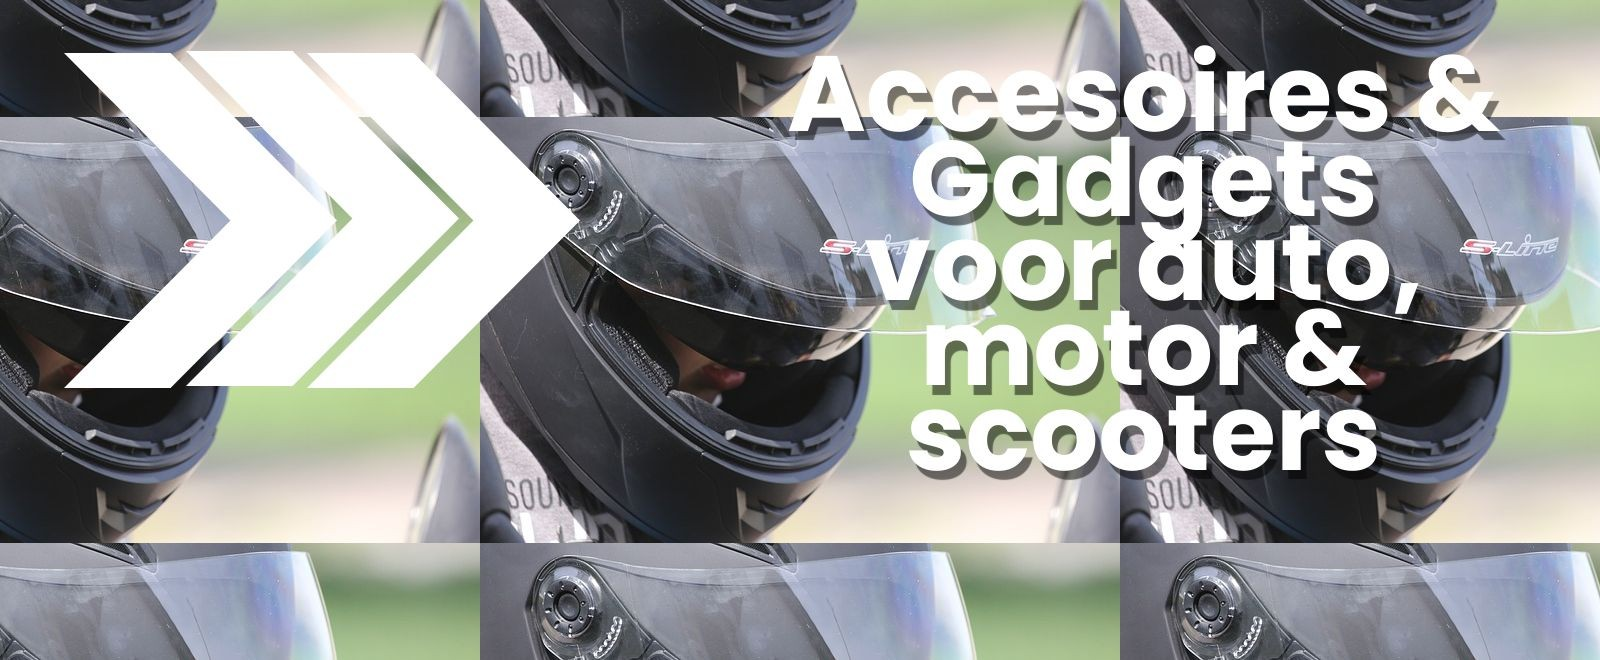 accesoires_gadgets_auto_motor_scooter